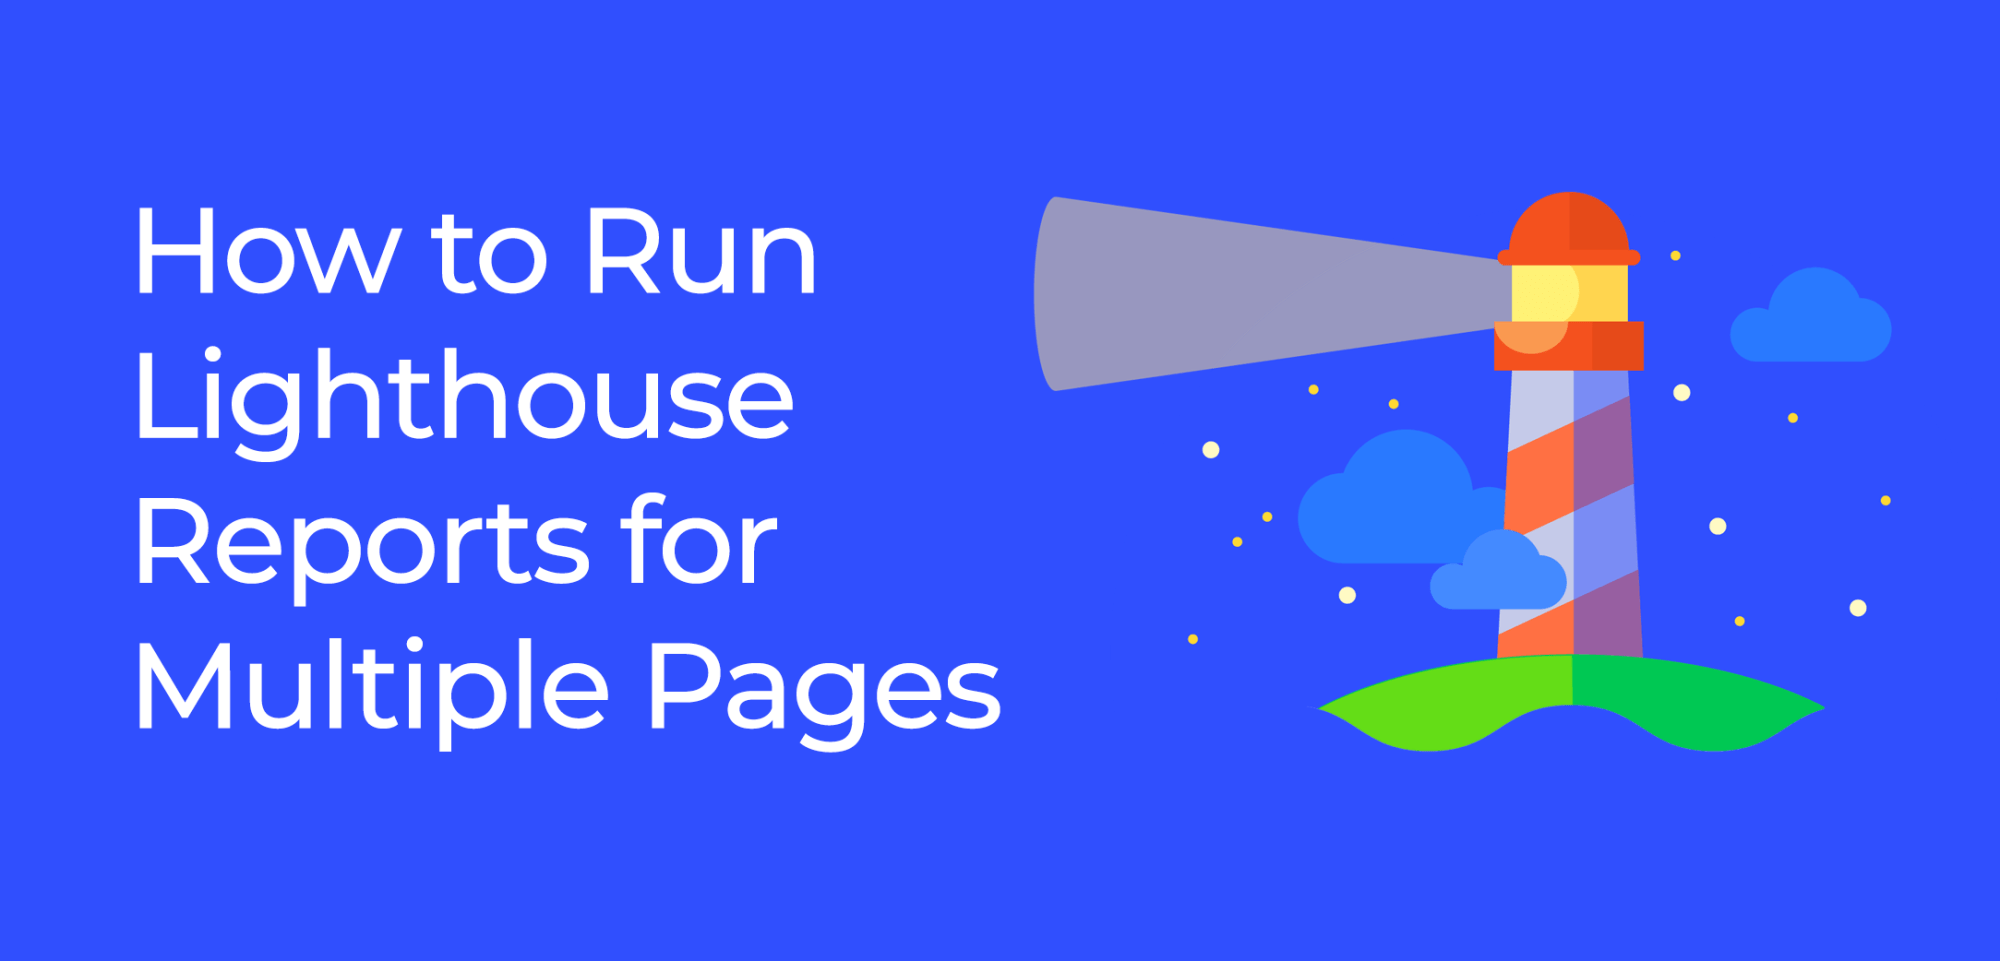 How to Run Lighthouse Reports for Multiple Pages